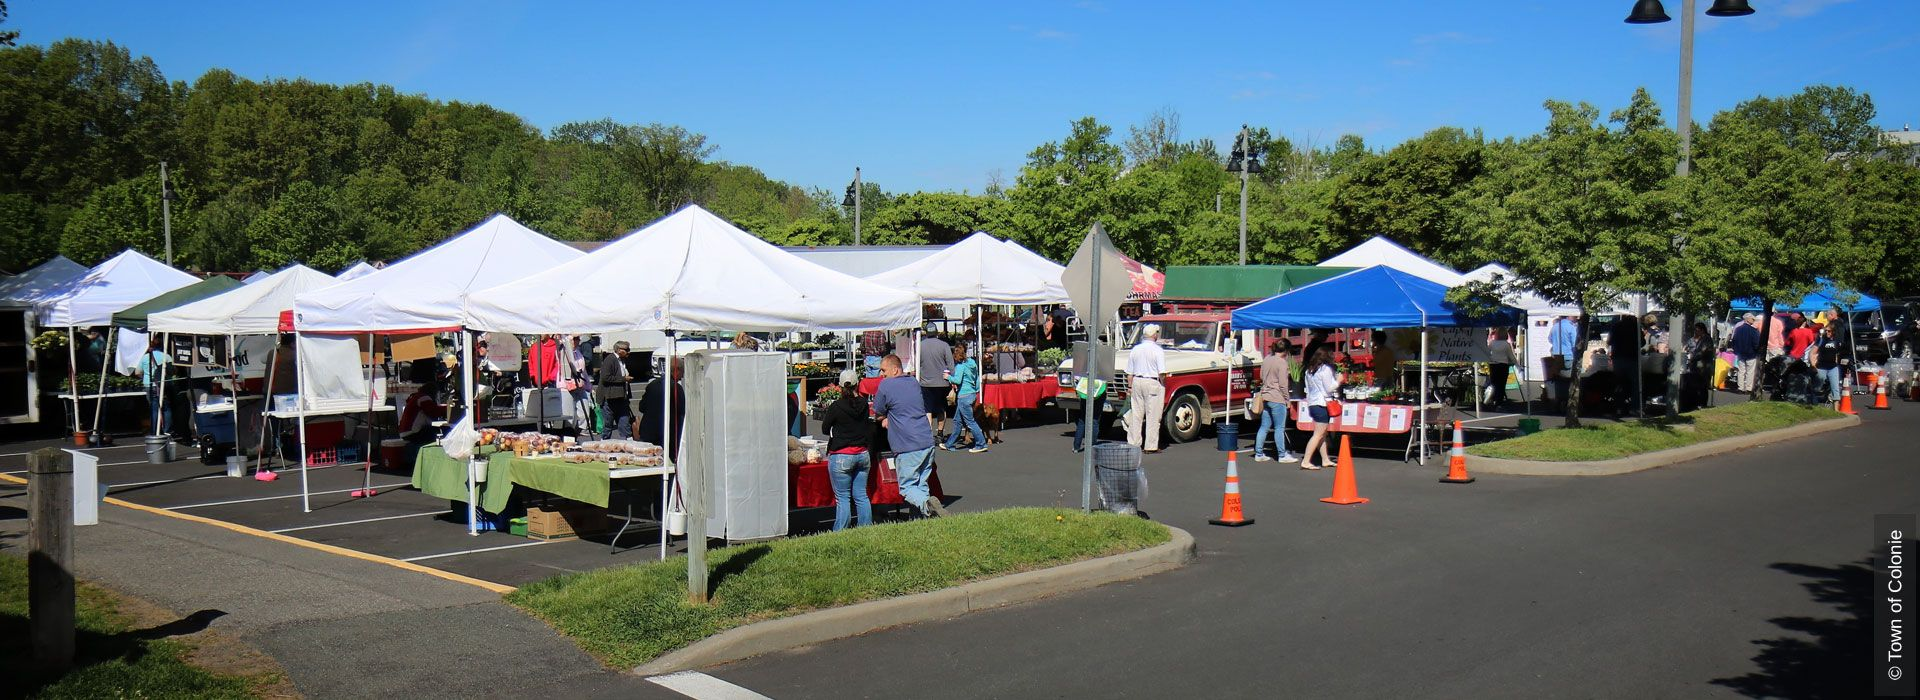 Saturday Is A Market Day Colonie Farmers Market At The Crossings In Loudonville New York 9am 1pm Http Www Farmer Farmer Farmers Market Online Marketing